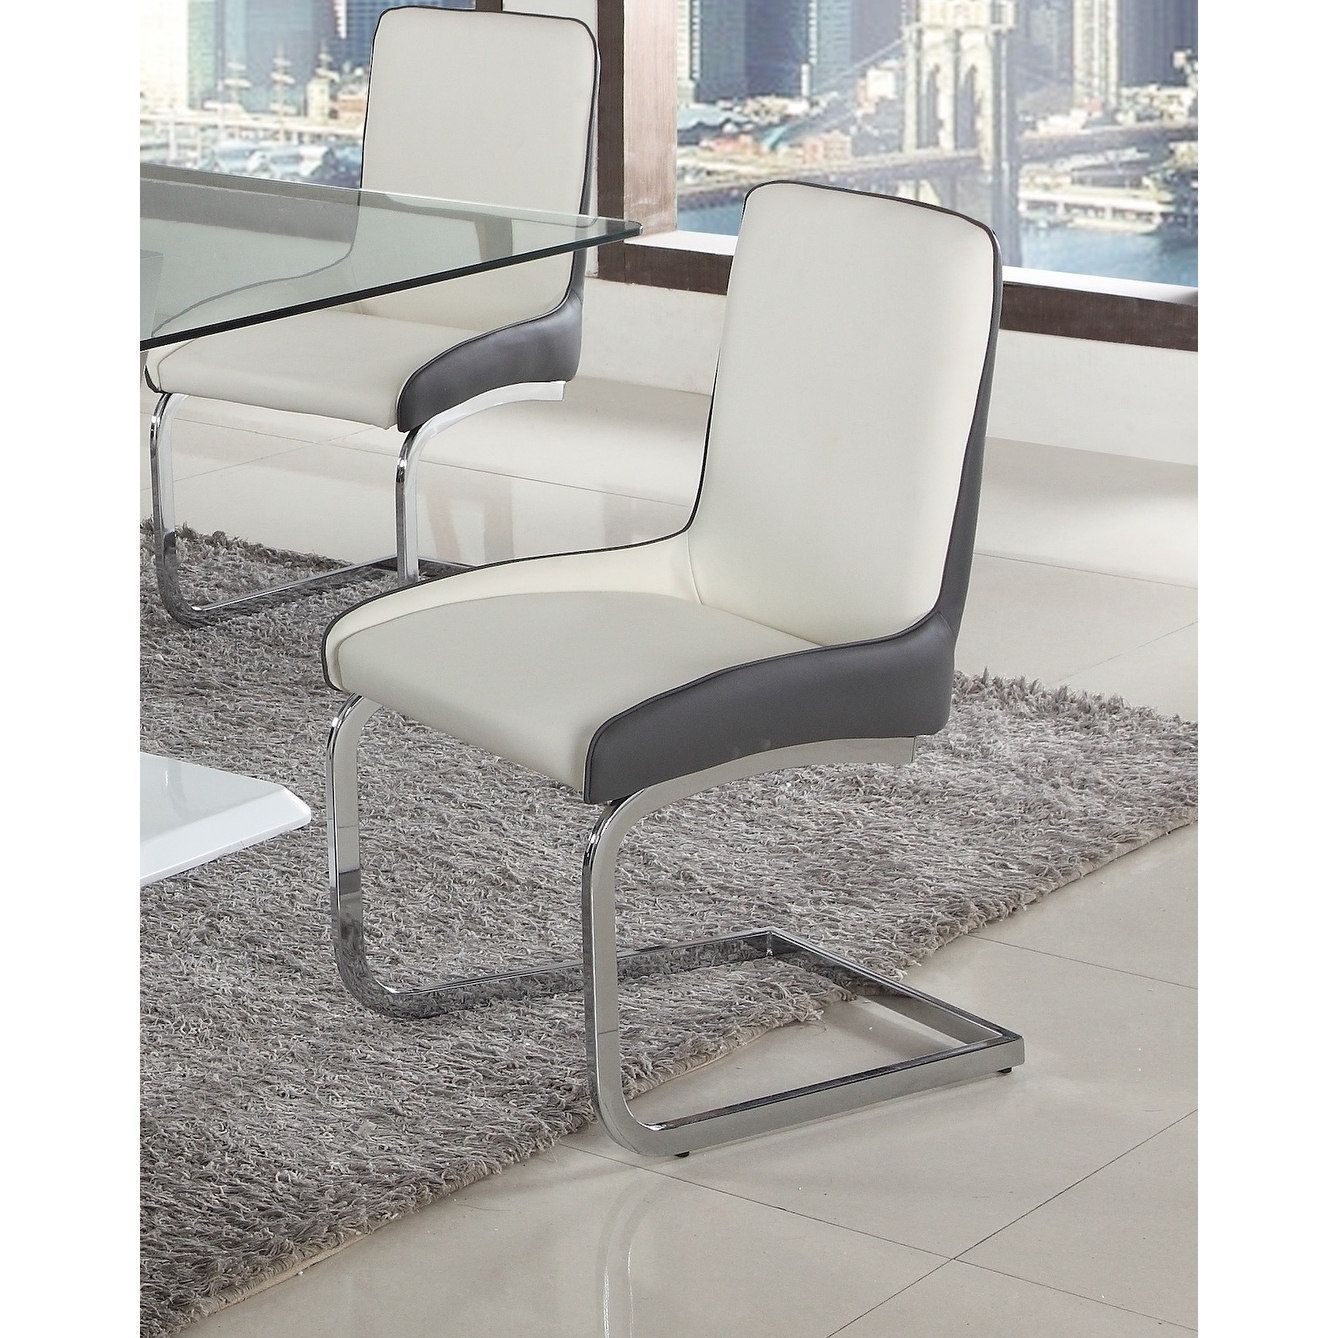 Outstanding Somette Sophie Two Tone Bucket Style Brewer Chair Set Of 2 Machost Co Dining Chair Design Ideas Machostcouk